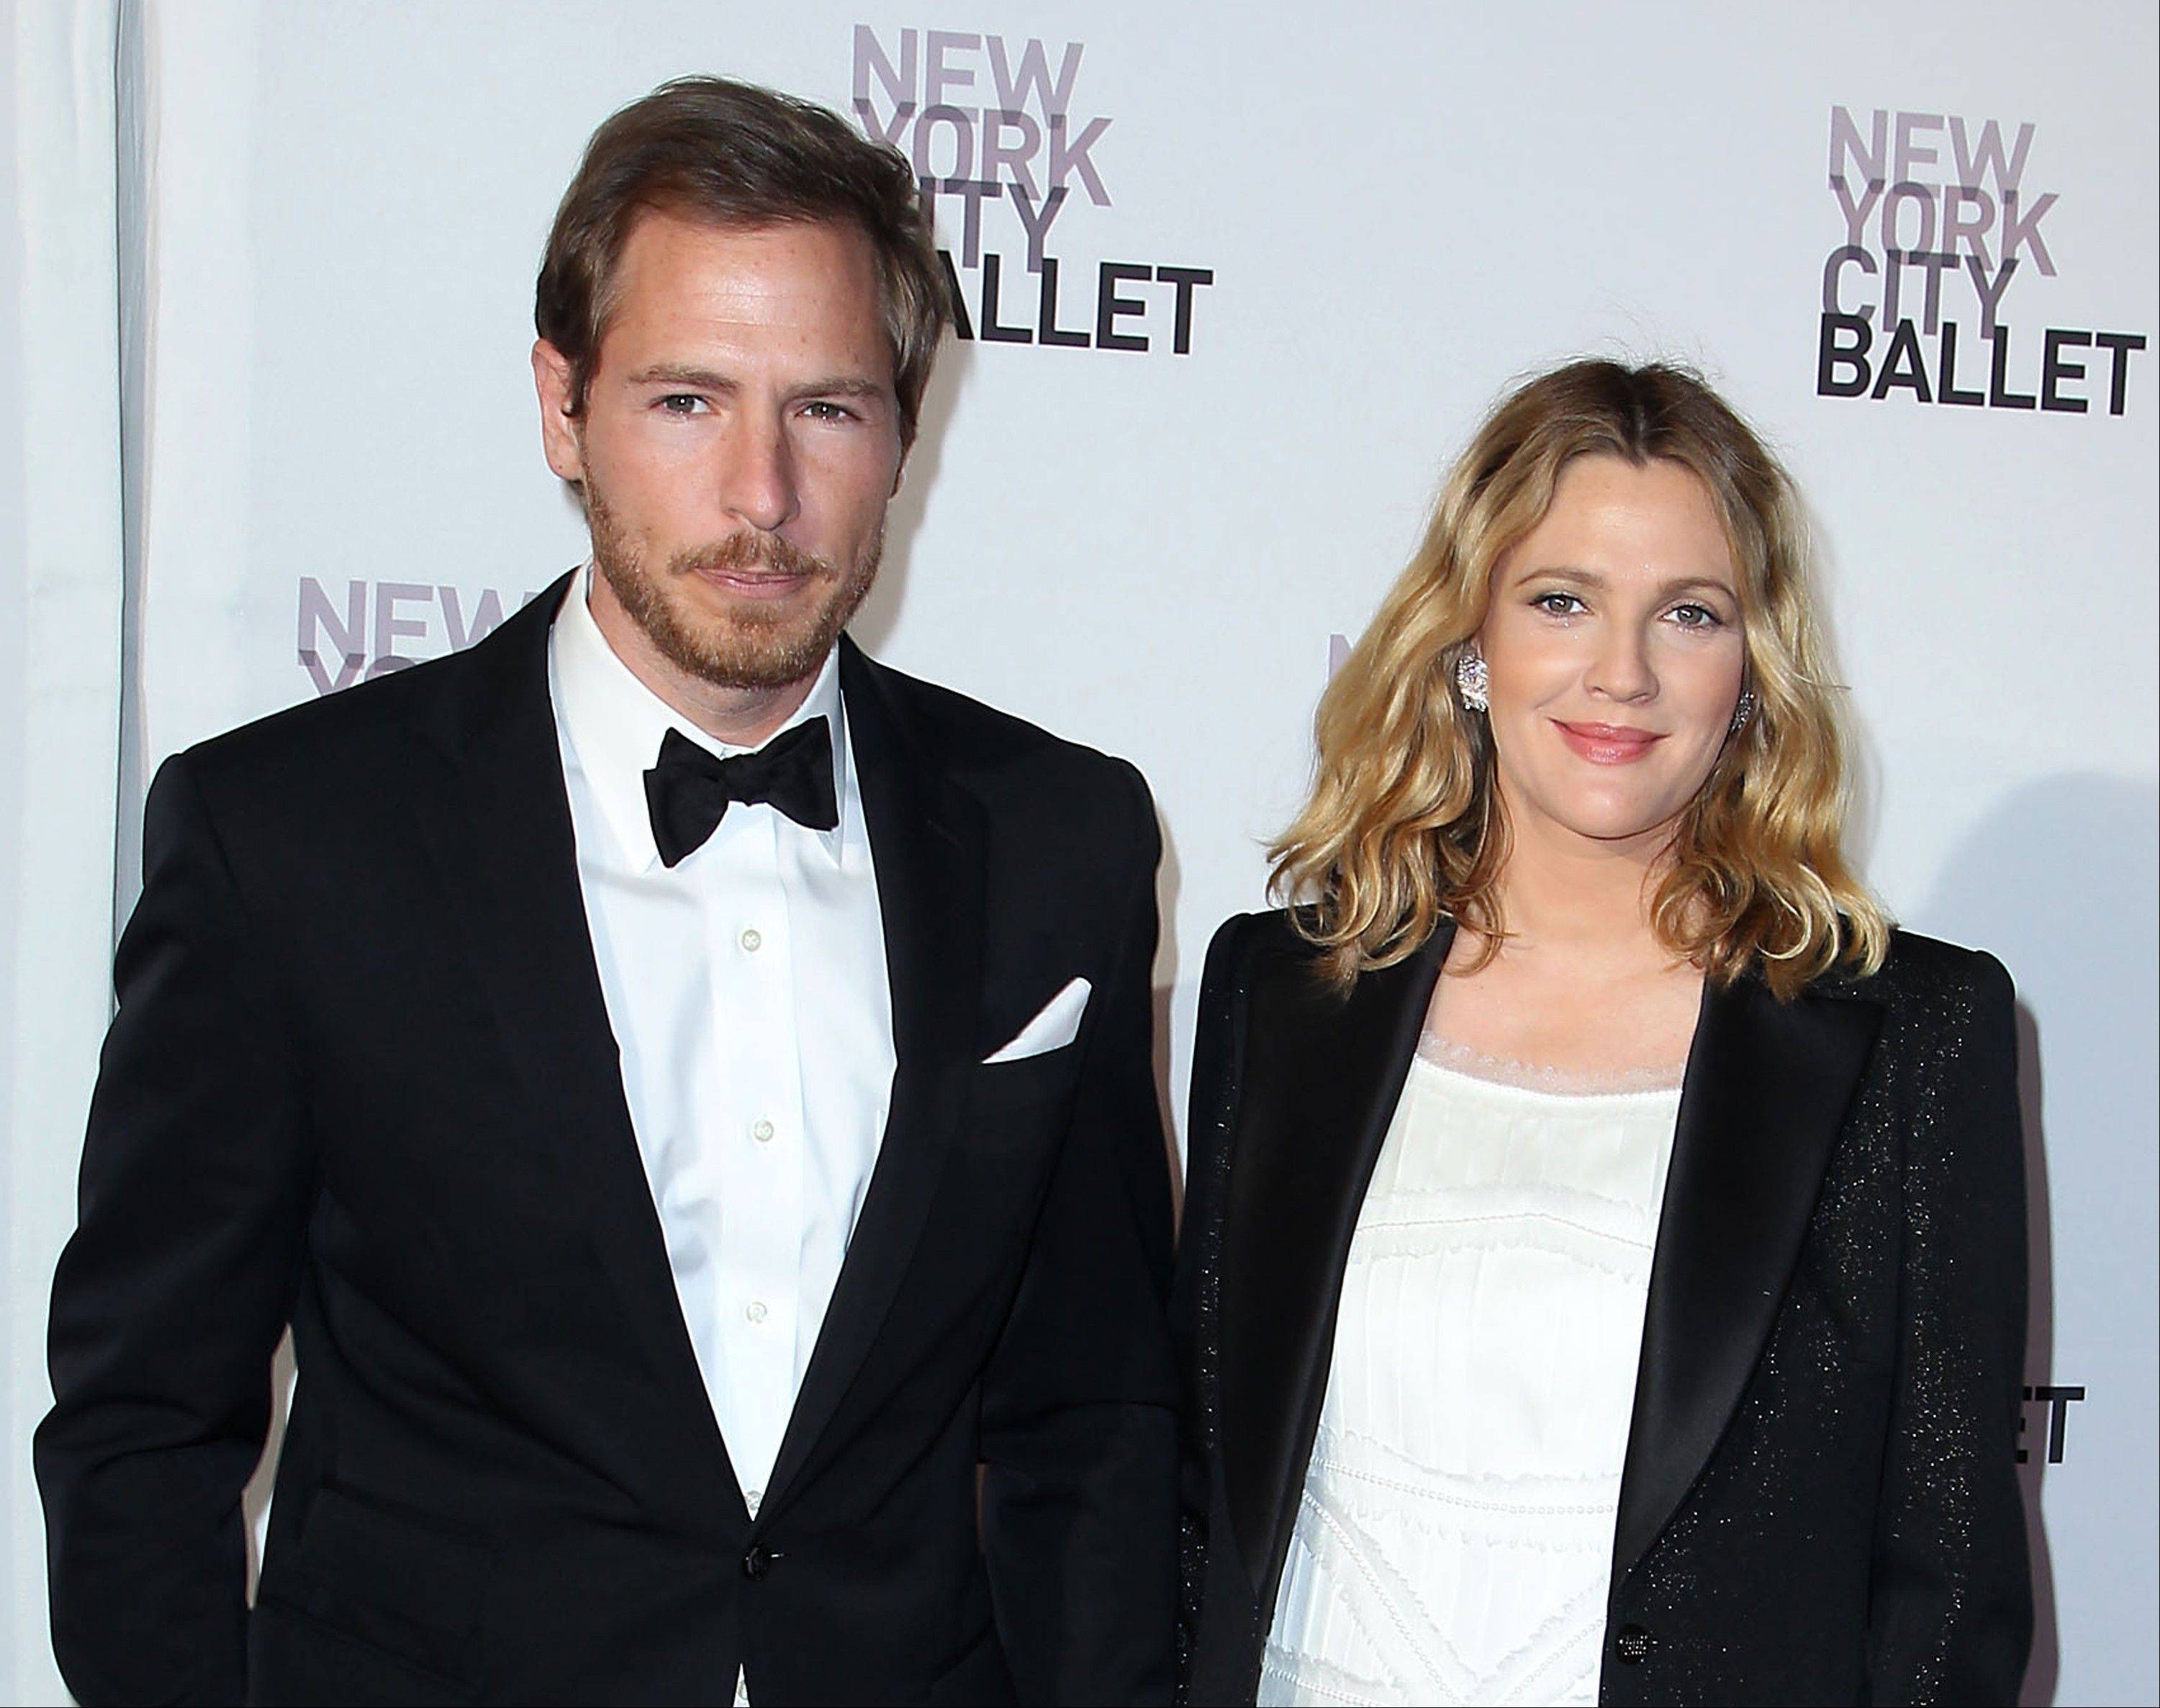 Will Kopelman, left, and Drew Barrymore are the parents of a baby girl named Olive Barrymore Kopelman born Sept. 26.